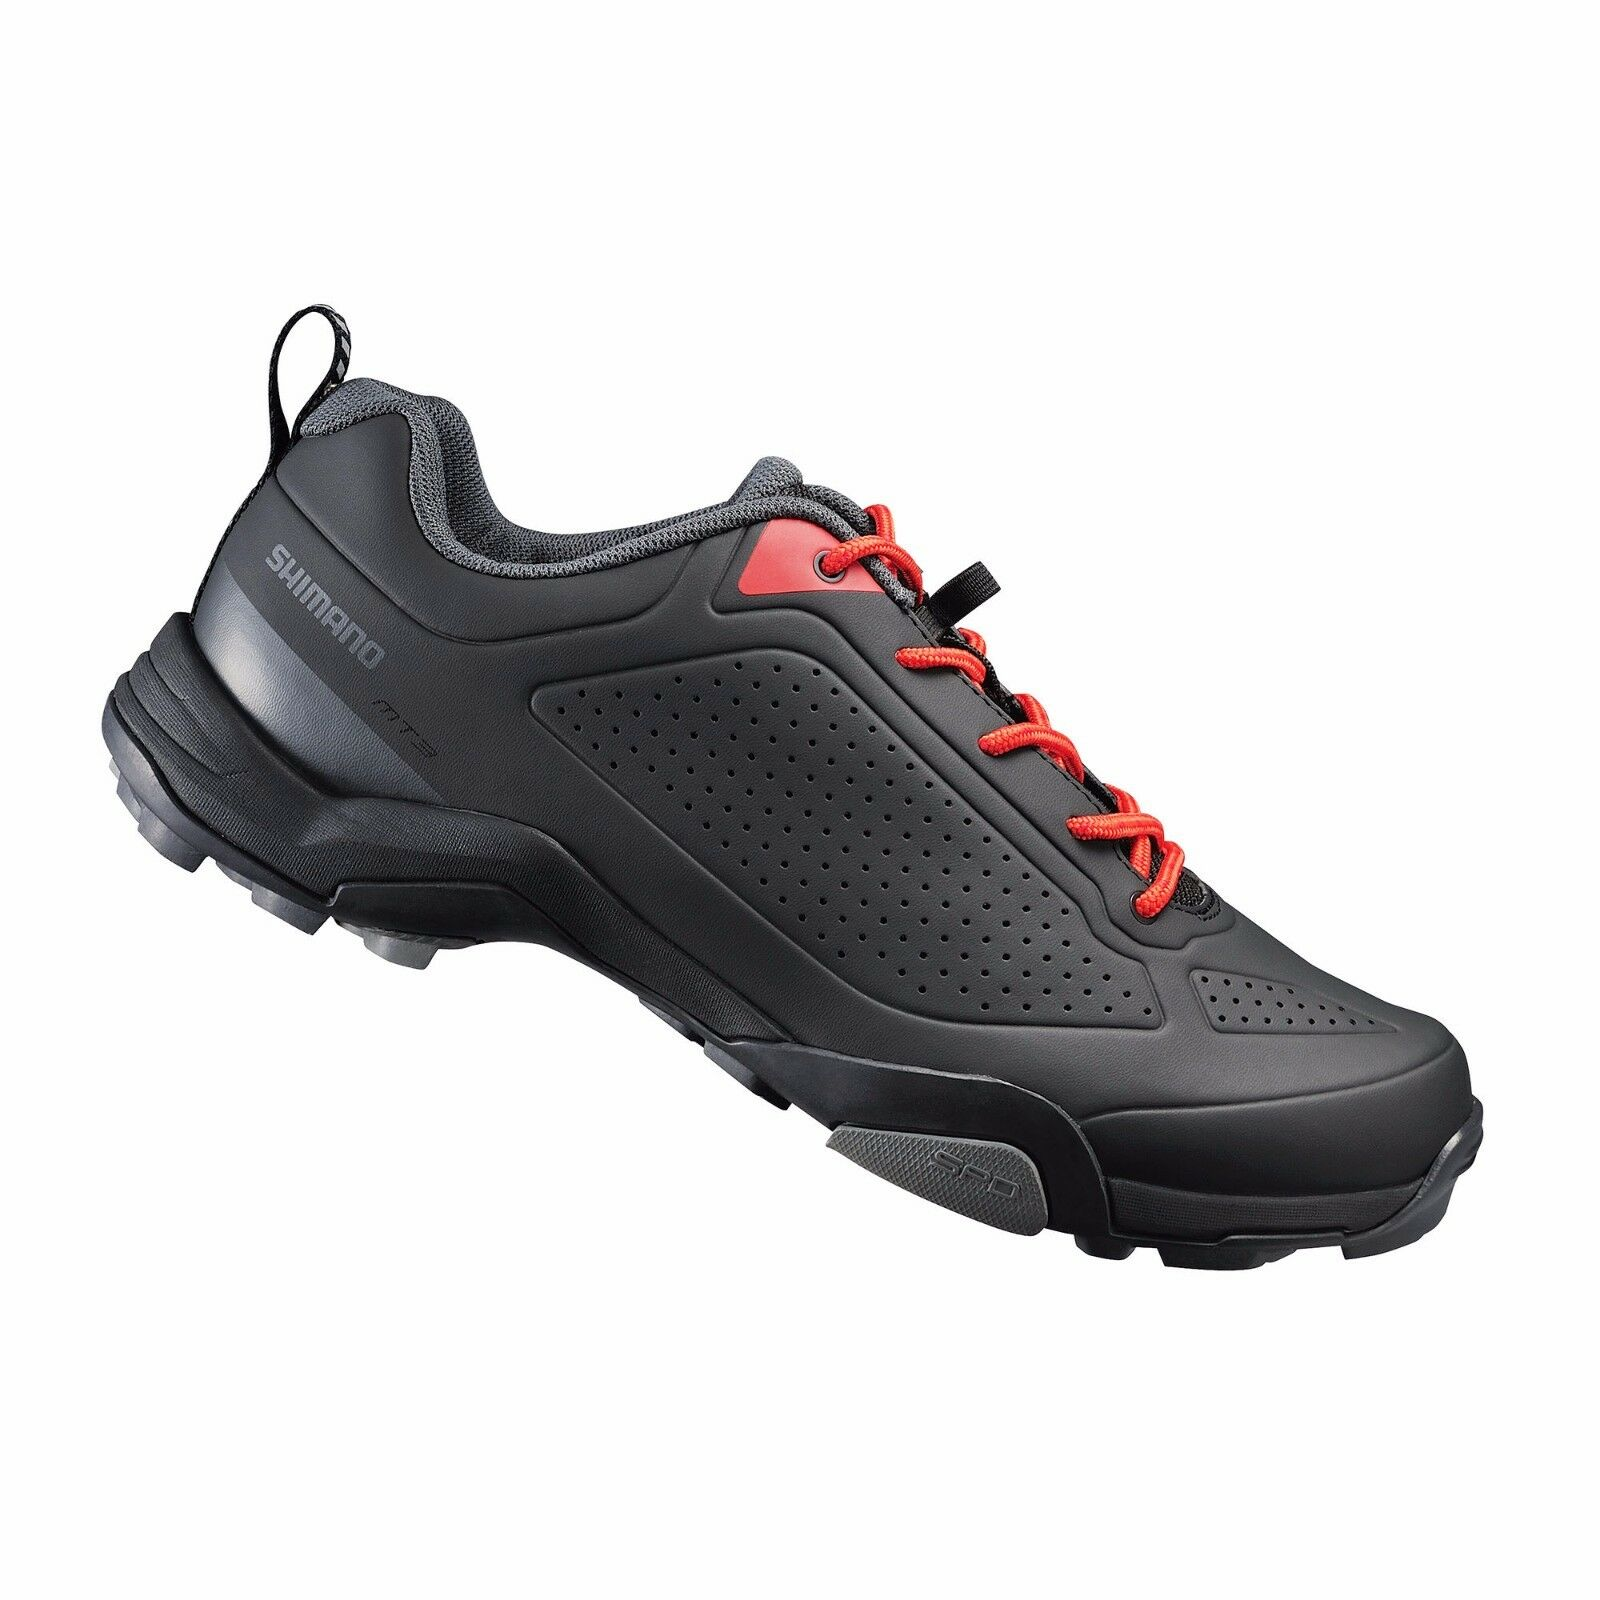 Shimano MT3 SPD Touring  shoes  for cheap